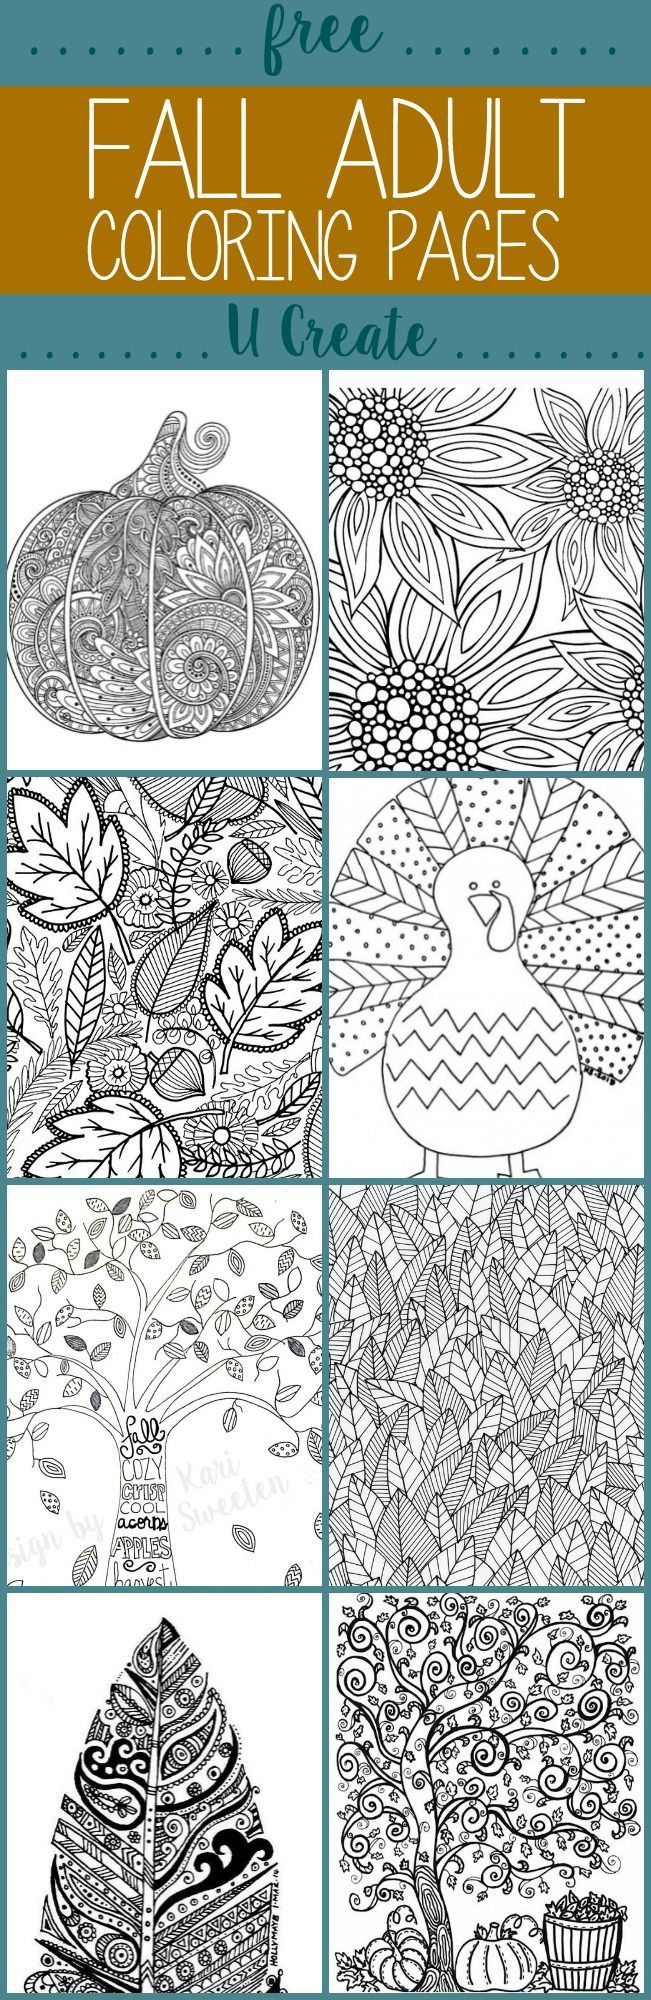 Pinterest christmas adult coloring pages - Free Fall Adult Coloring Pages U Create